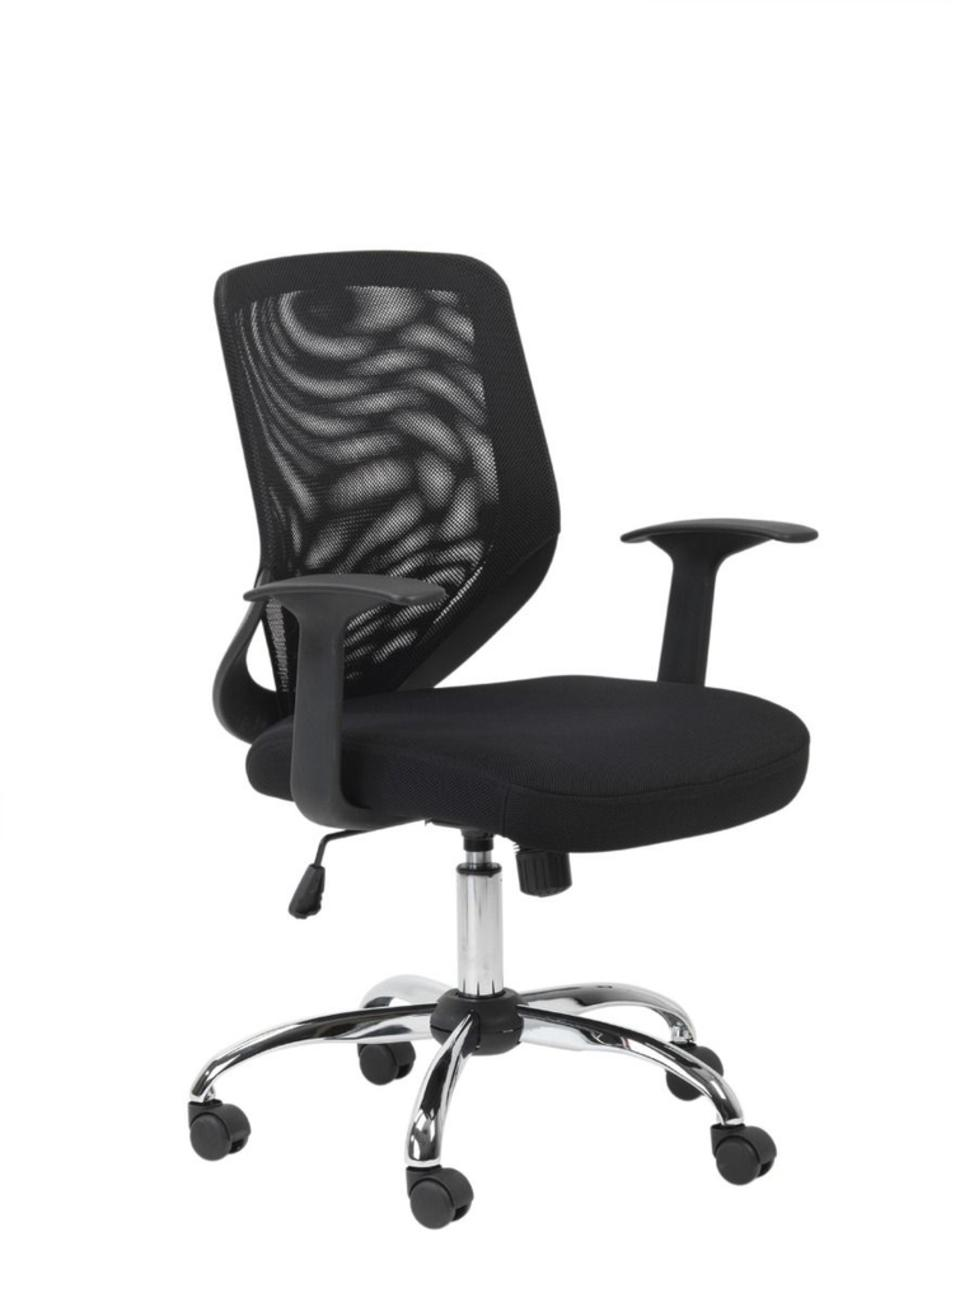 Atlantis Mesh Operator Chair